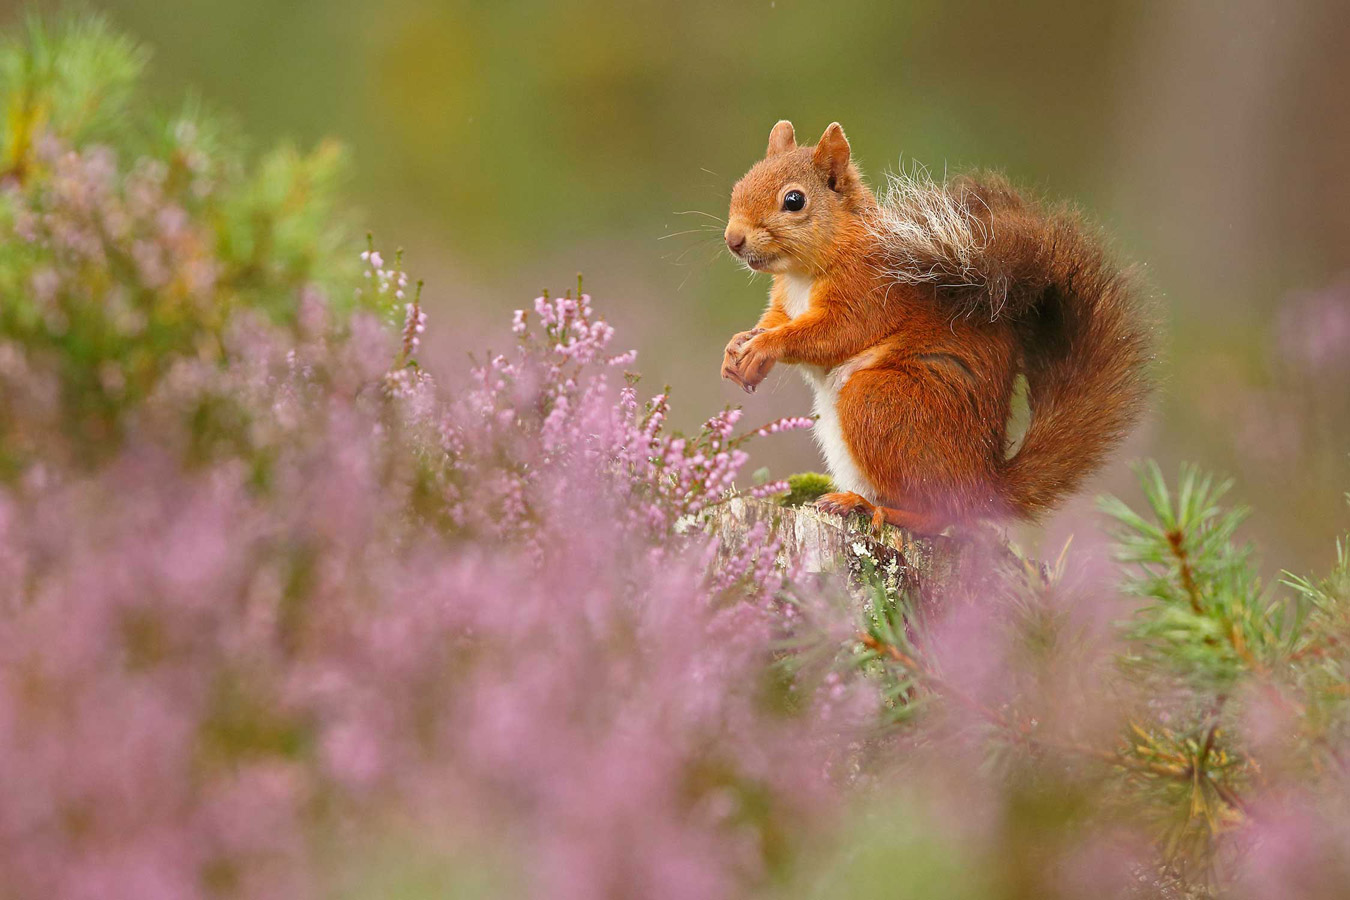 Summer red squirrel in purple heather. Rothiemurchus Forest, Cairngorms Nationa Park, © Neil McIntyre, British Wildlife Photography Awards